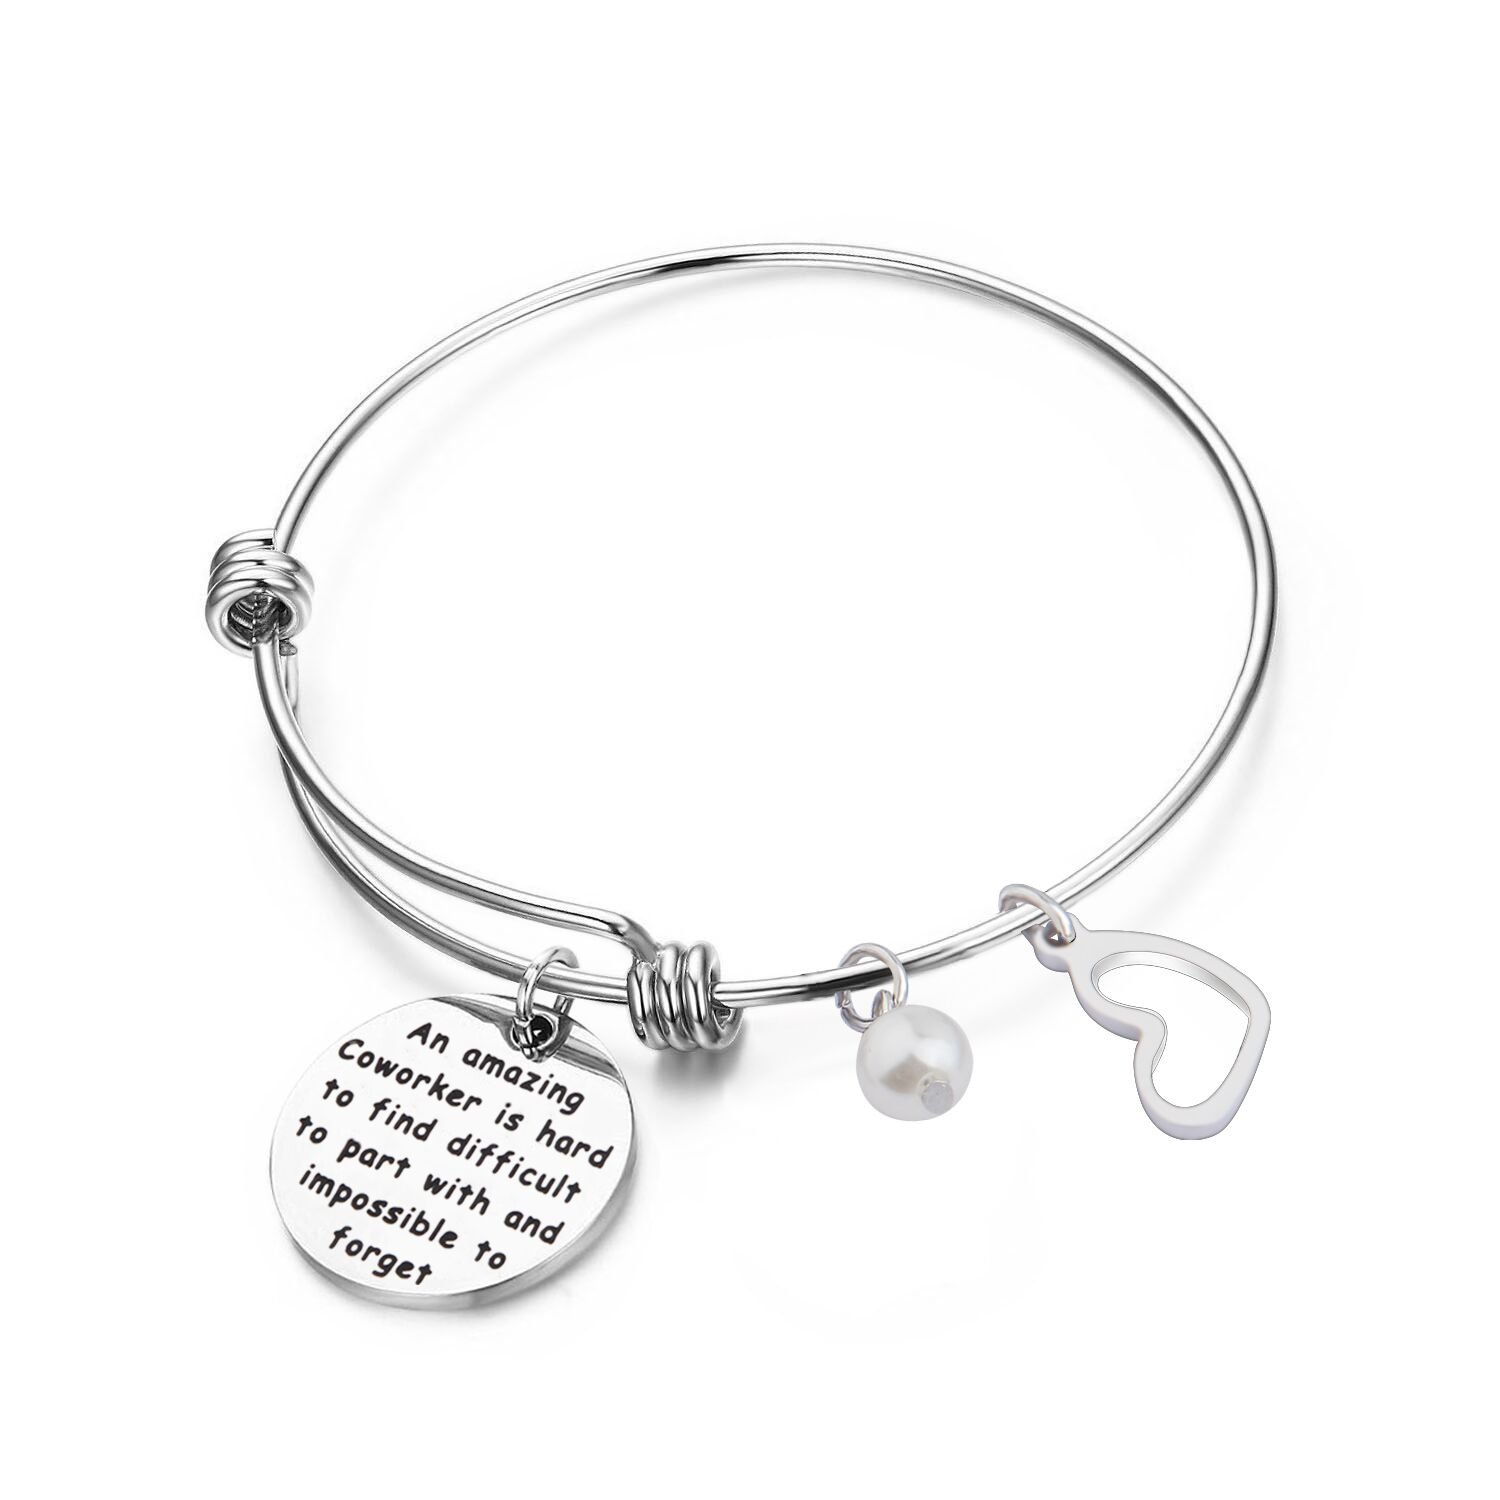 Zuo Bao Coworker Leaving Gifts an Amazing Coworker is Hard to Find Difficult to Part with and Impossible to Forget Goodbye Gifts for Best Cowork Colleague and Boss (Bracelet)